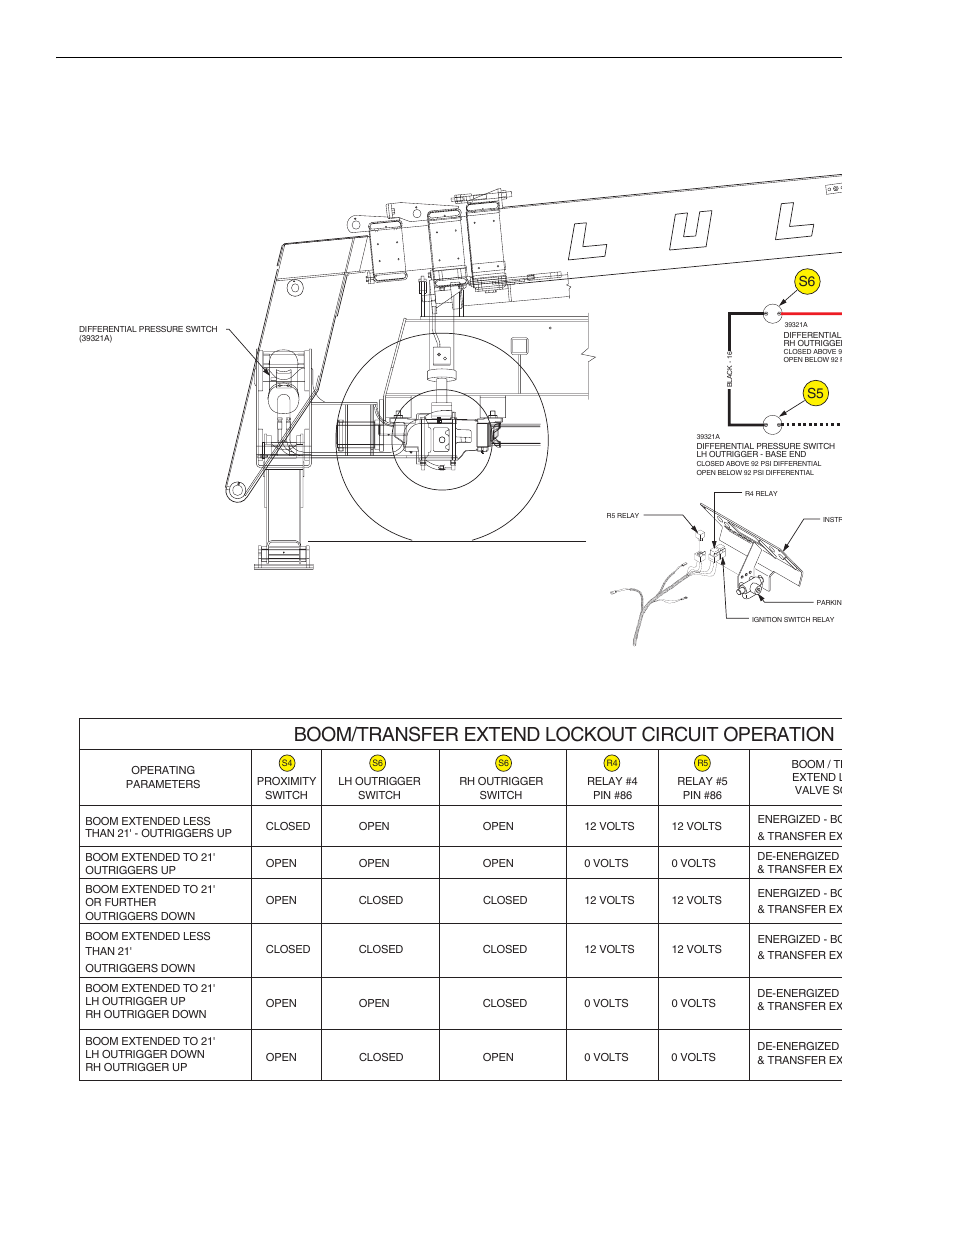 Lull Wiring Diagram Wiring Diagram Schematics Honda Motorcycle Repair  Diagrams Lull Wiring Diagram